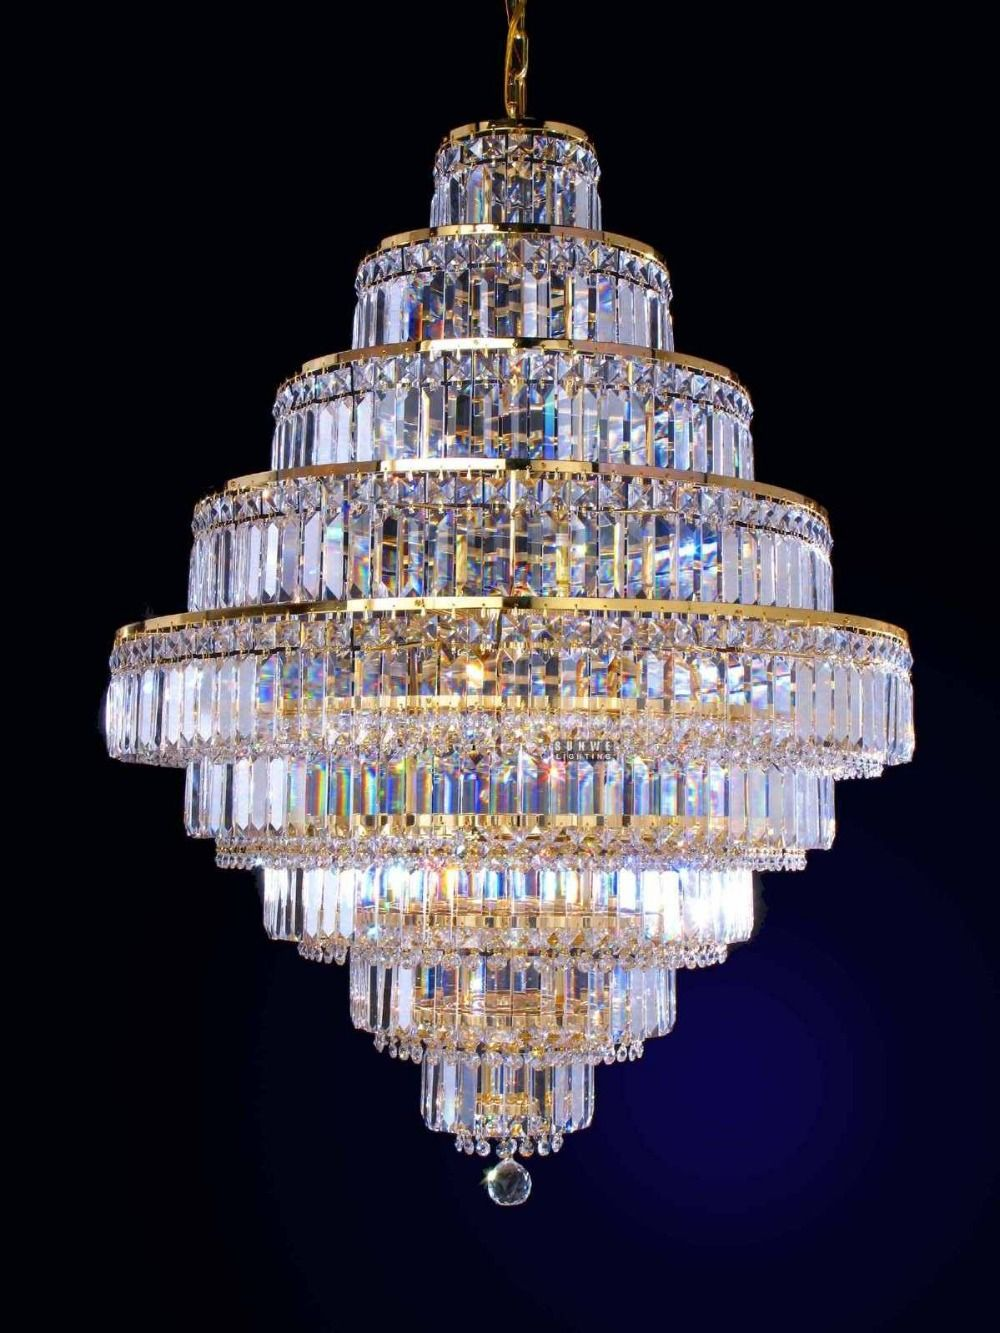 Unique Chandelier Lighting is a new way of lighting Lighting and